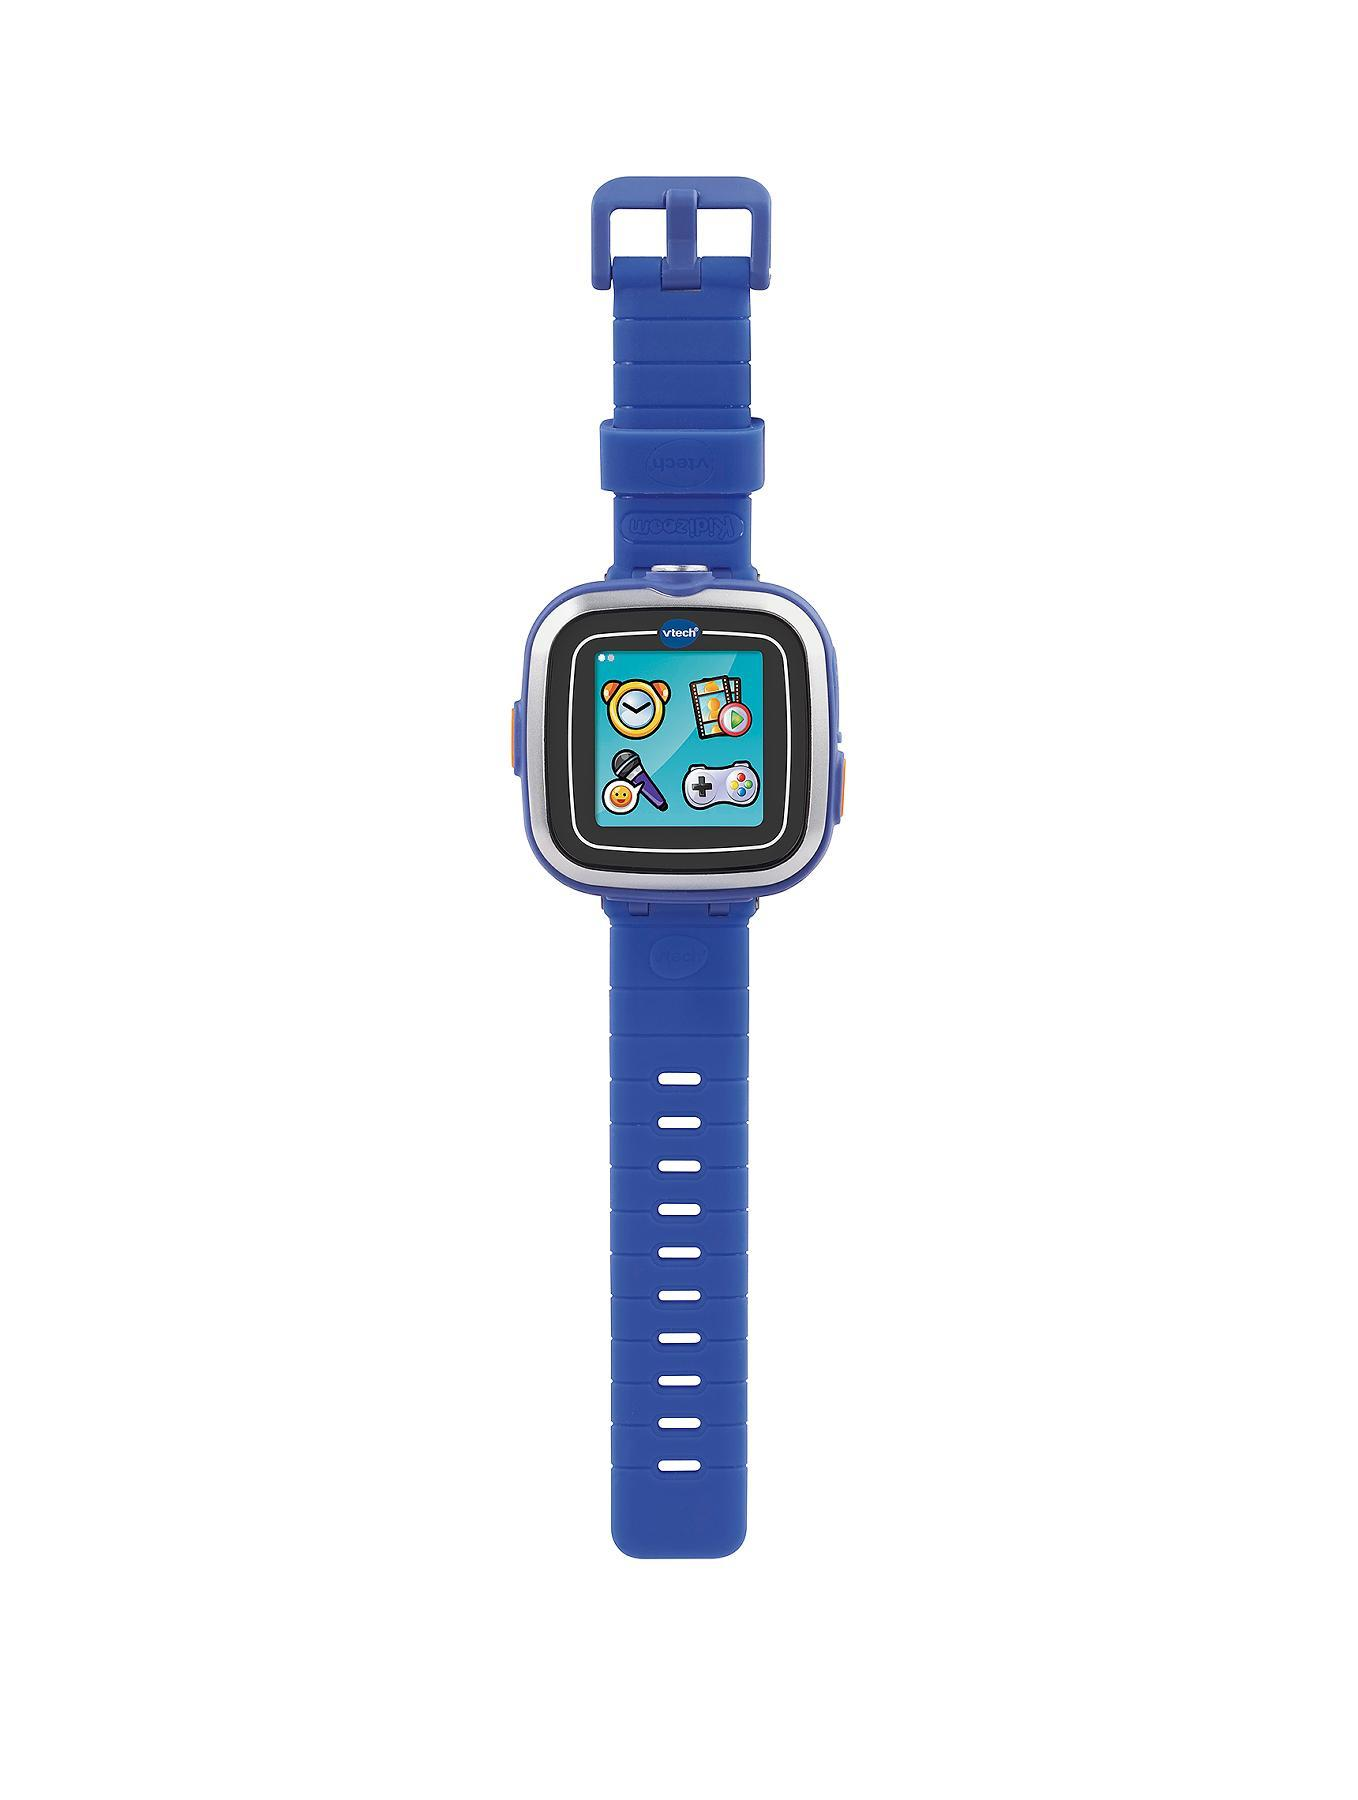 VTech Kidizoom Smart Watch - Blue